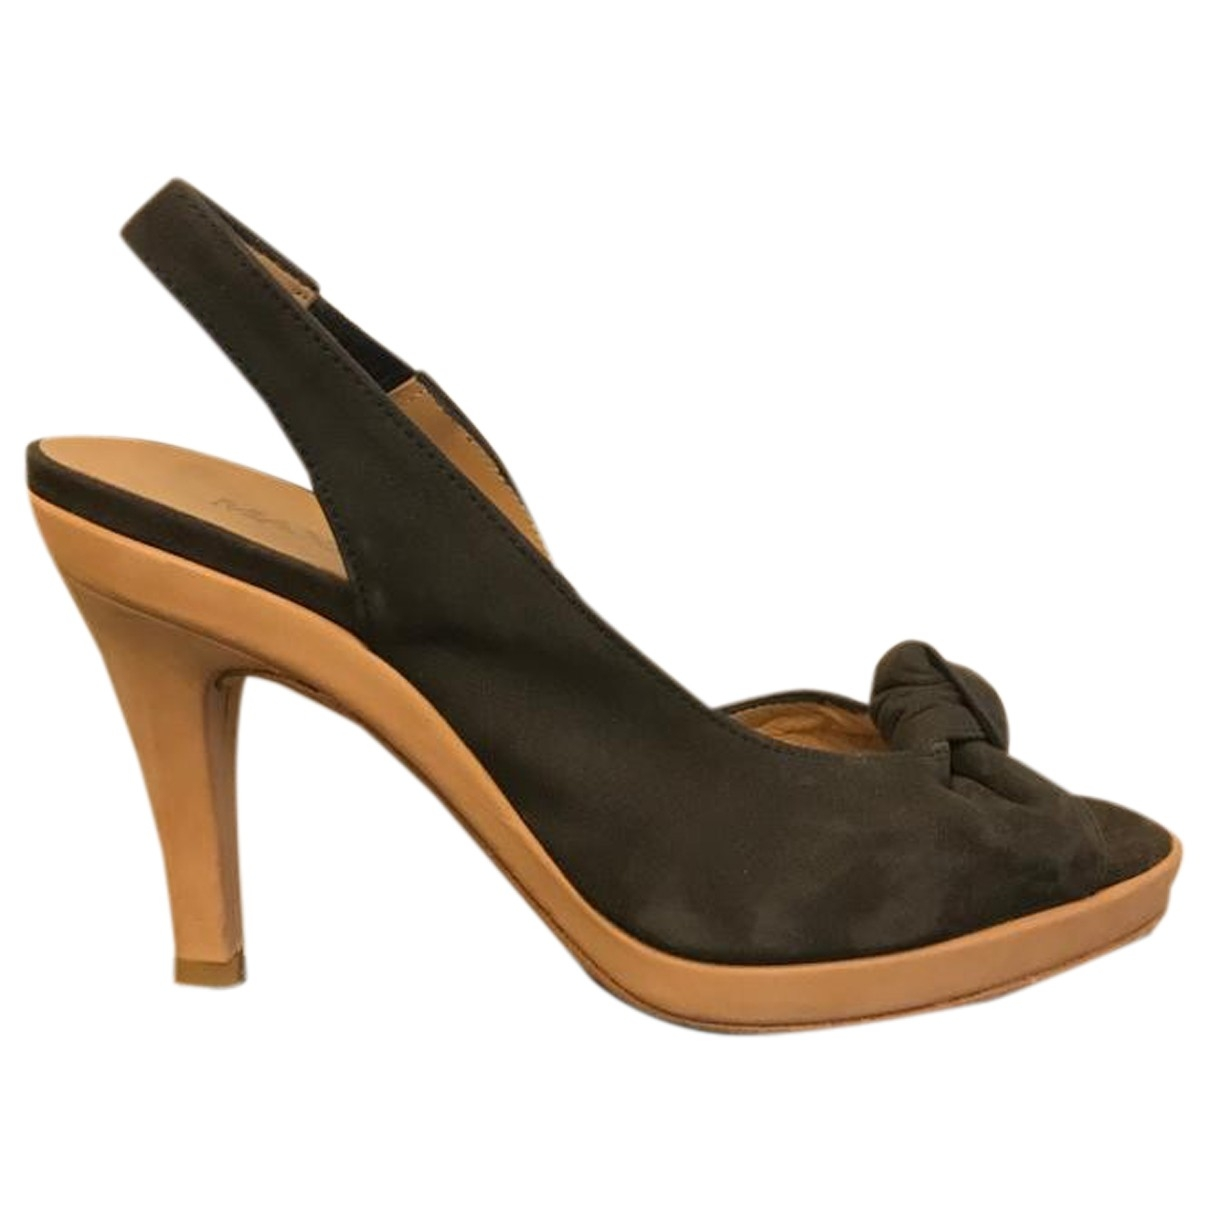 Max & Co \N Brown Leather Heels for Women 35 EU